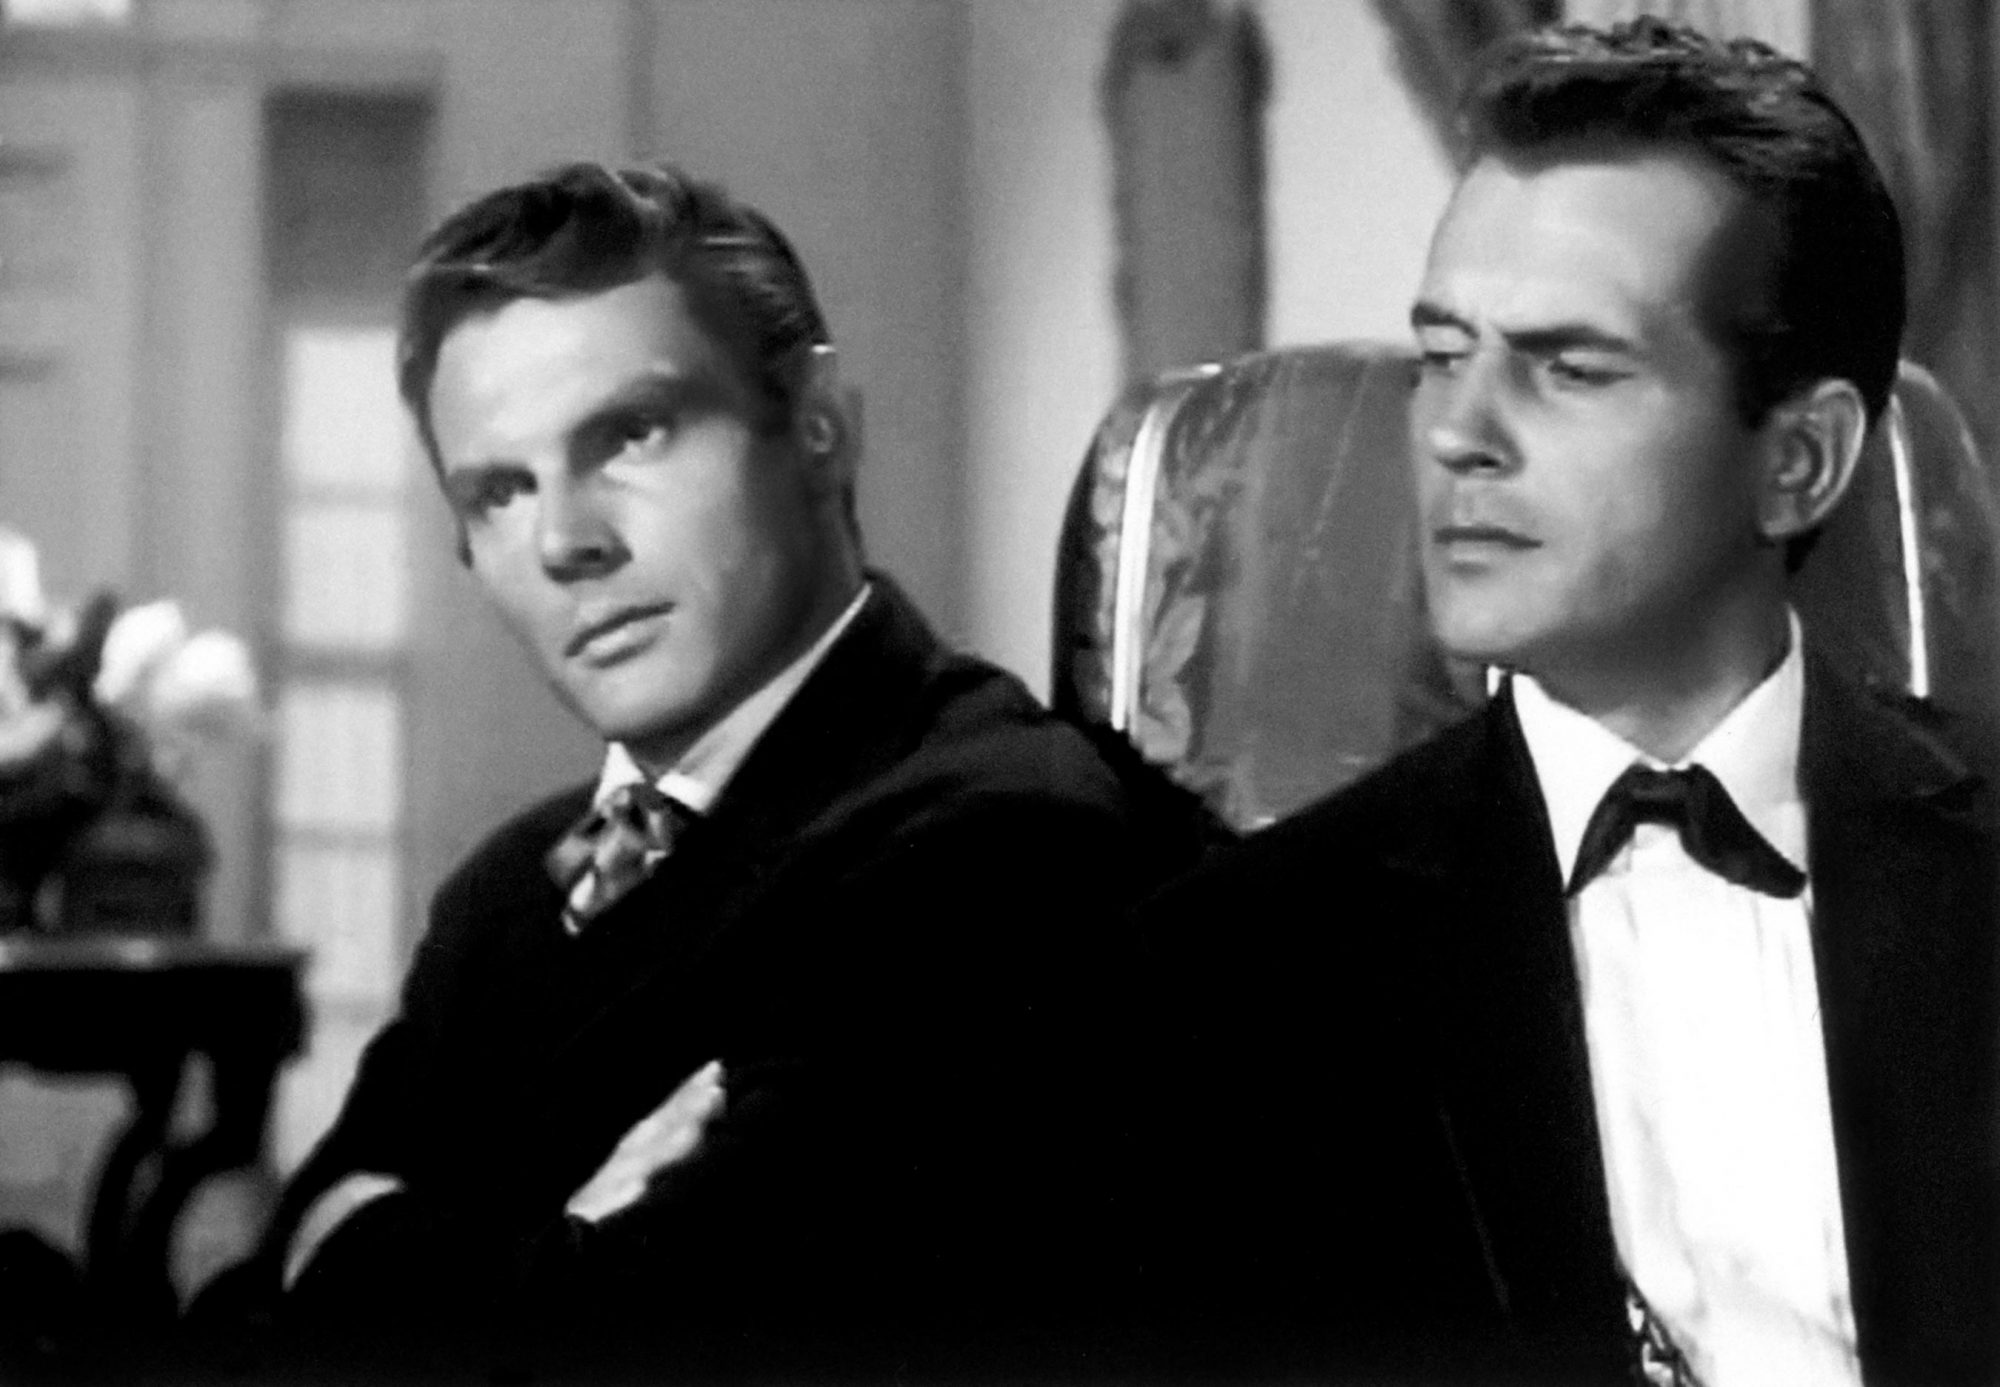 MAVERICK, (from left): Adam West, Jack Kelly, 'Pappy', (Season 3, aired Sept. 13, 1959), 1957-62.